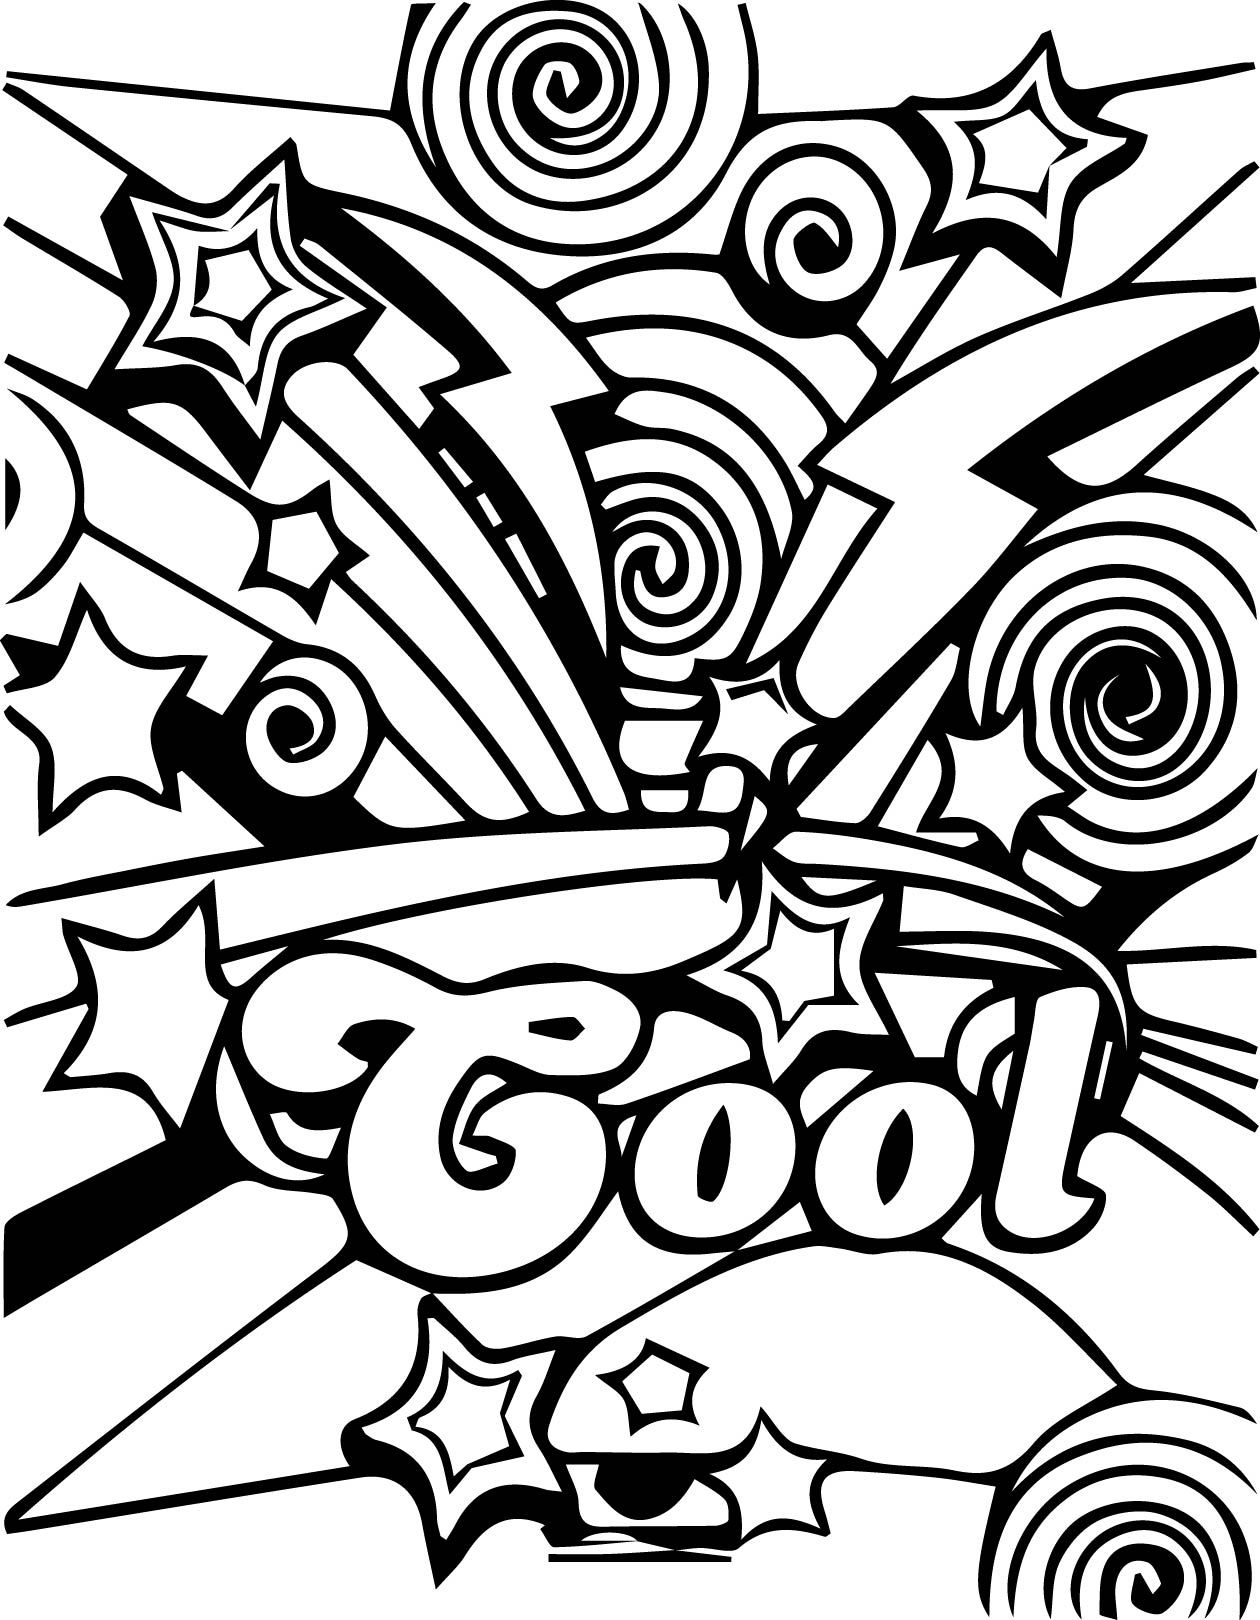 Cool Coloring Page Printable  Cool coloring pages, Printable